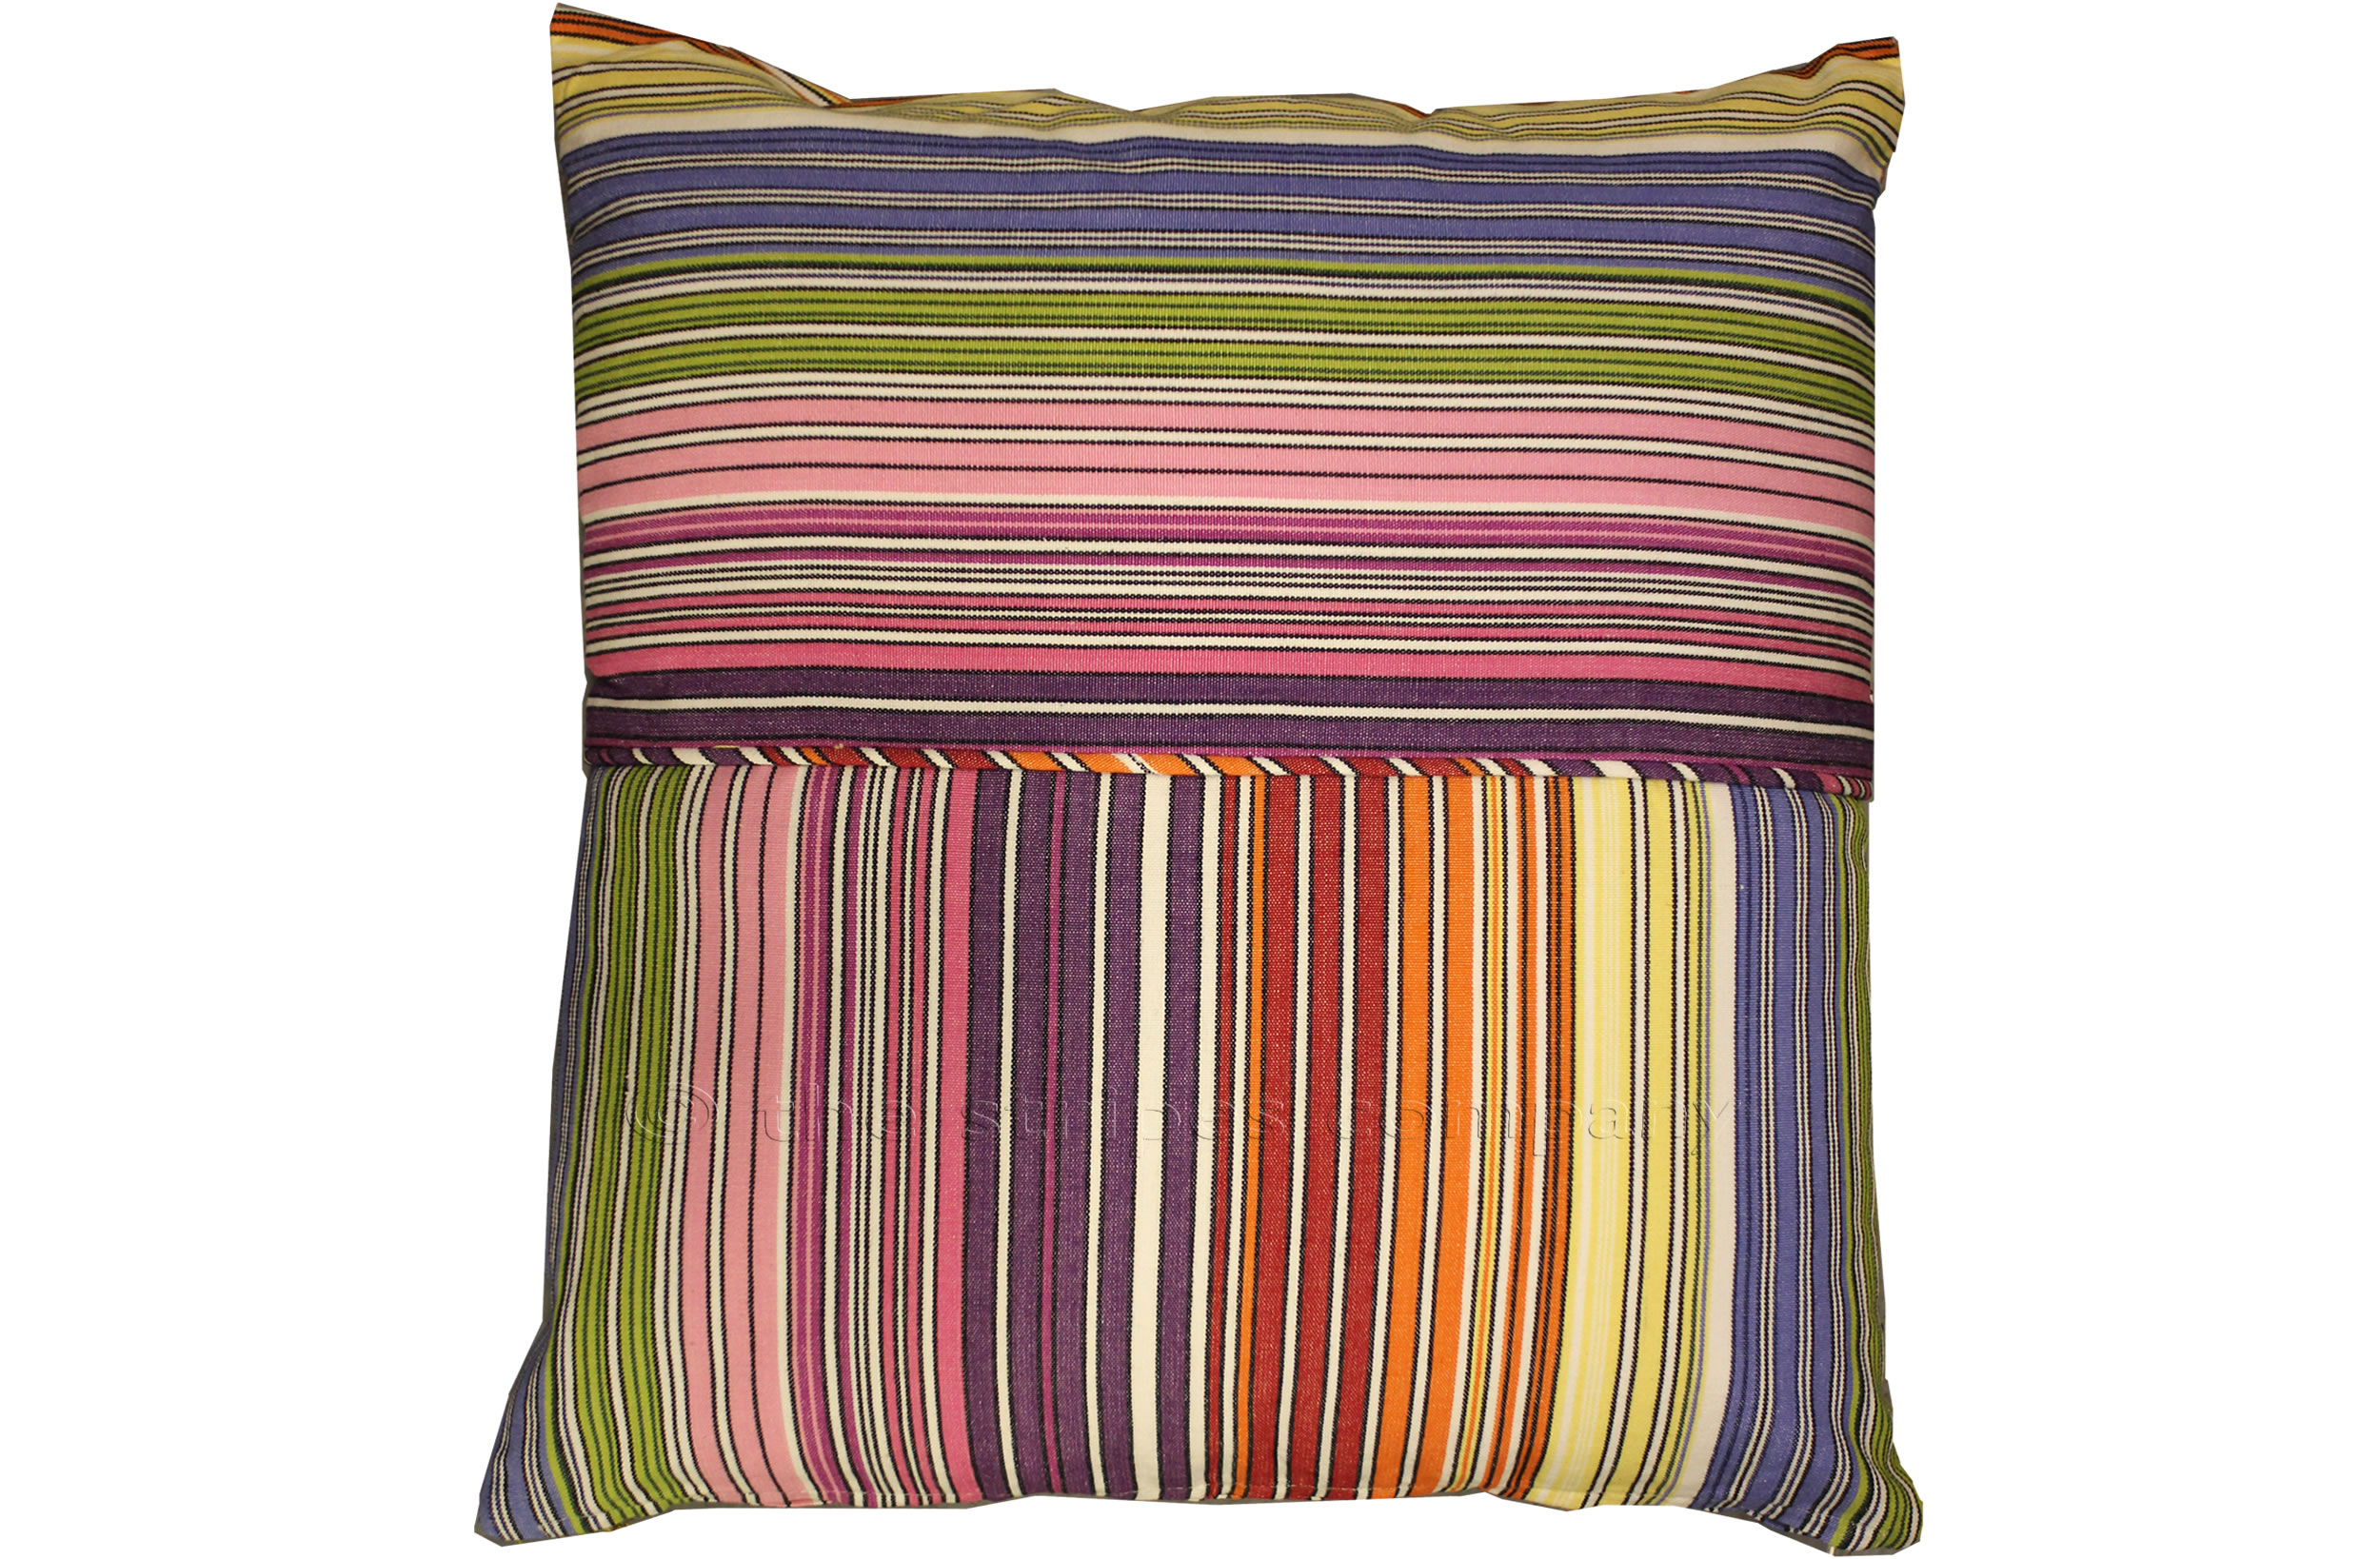 Striped Piped Cushions | Square Piped Cushions narrow rainbow multi stripe, white